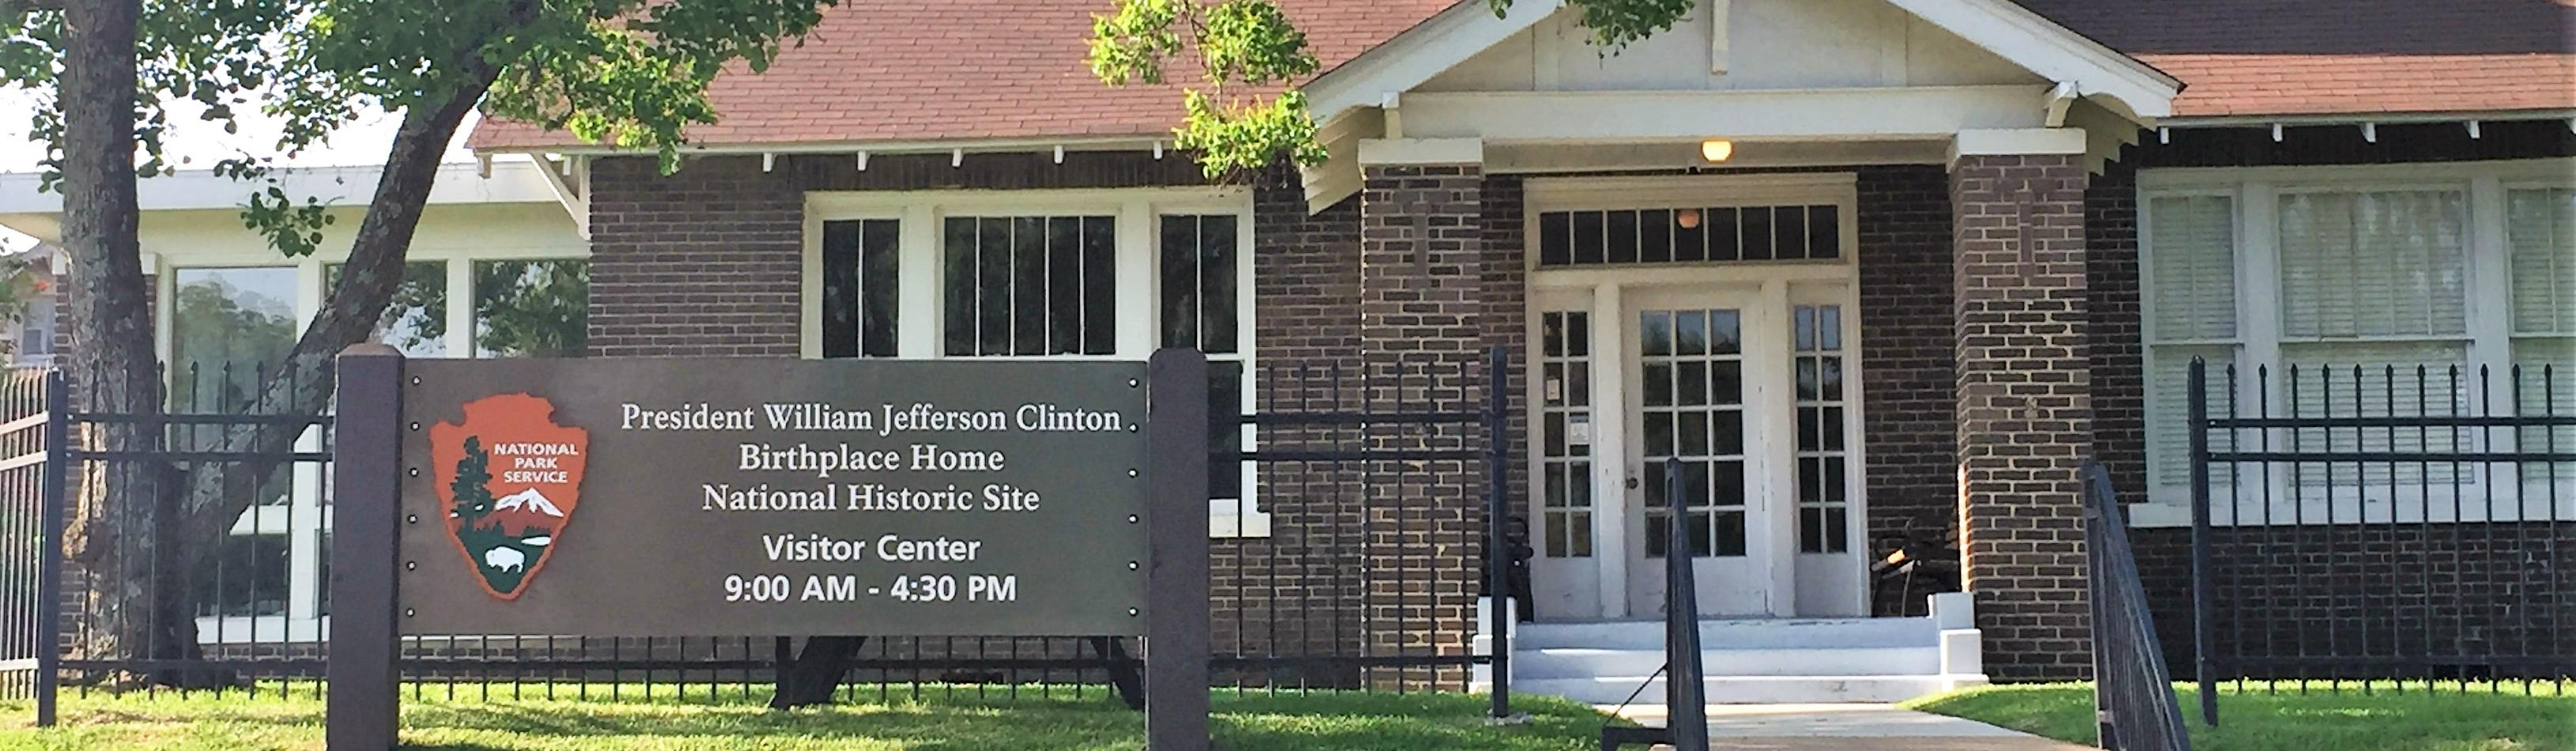 The Visitor Center for the Clinton Birthplace Home NHS